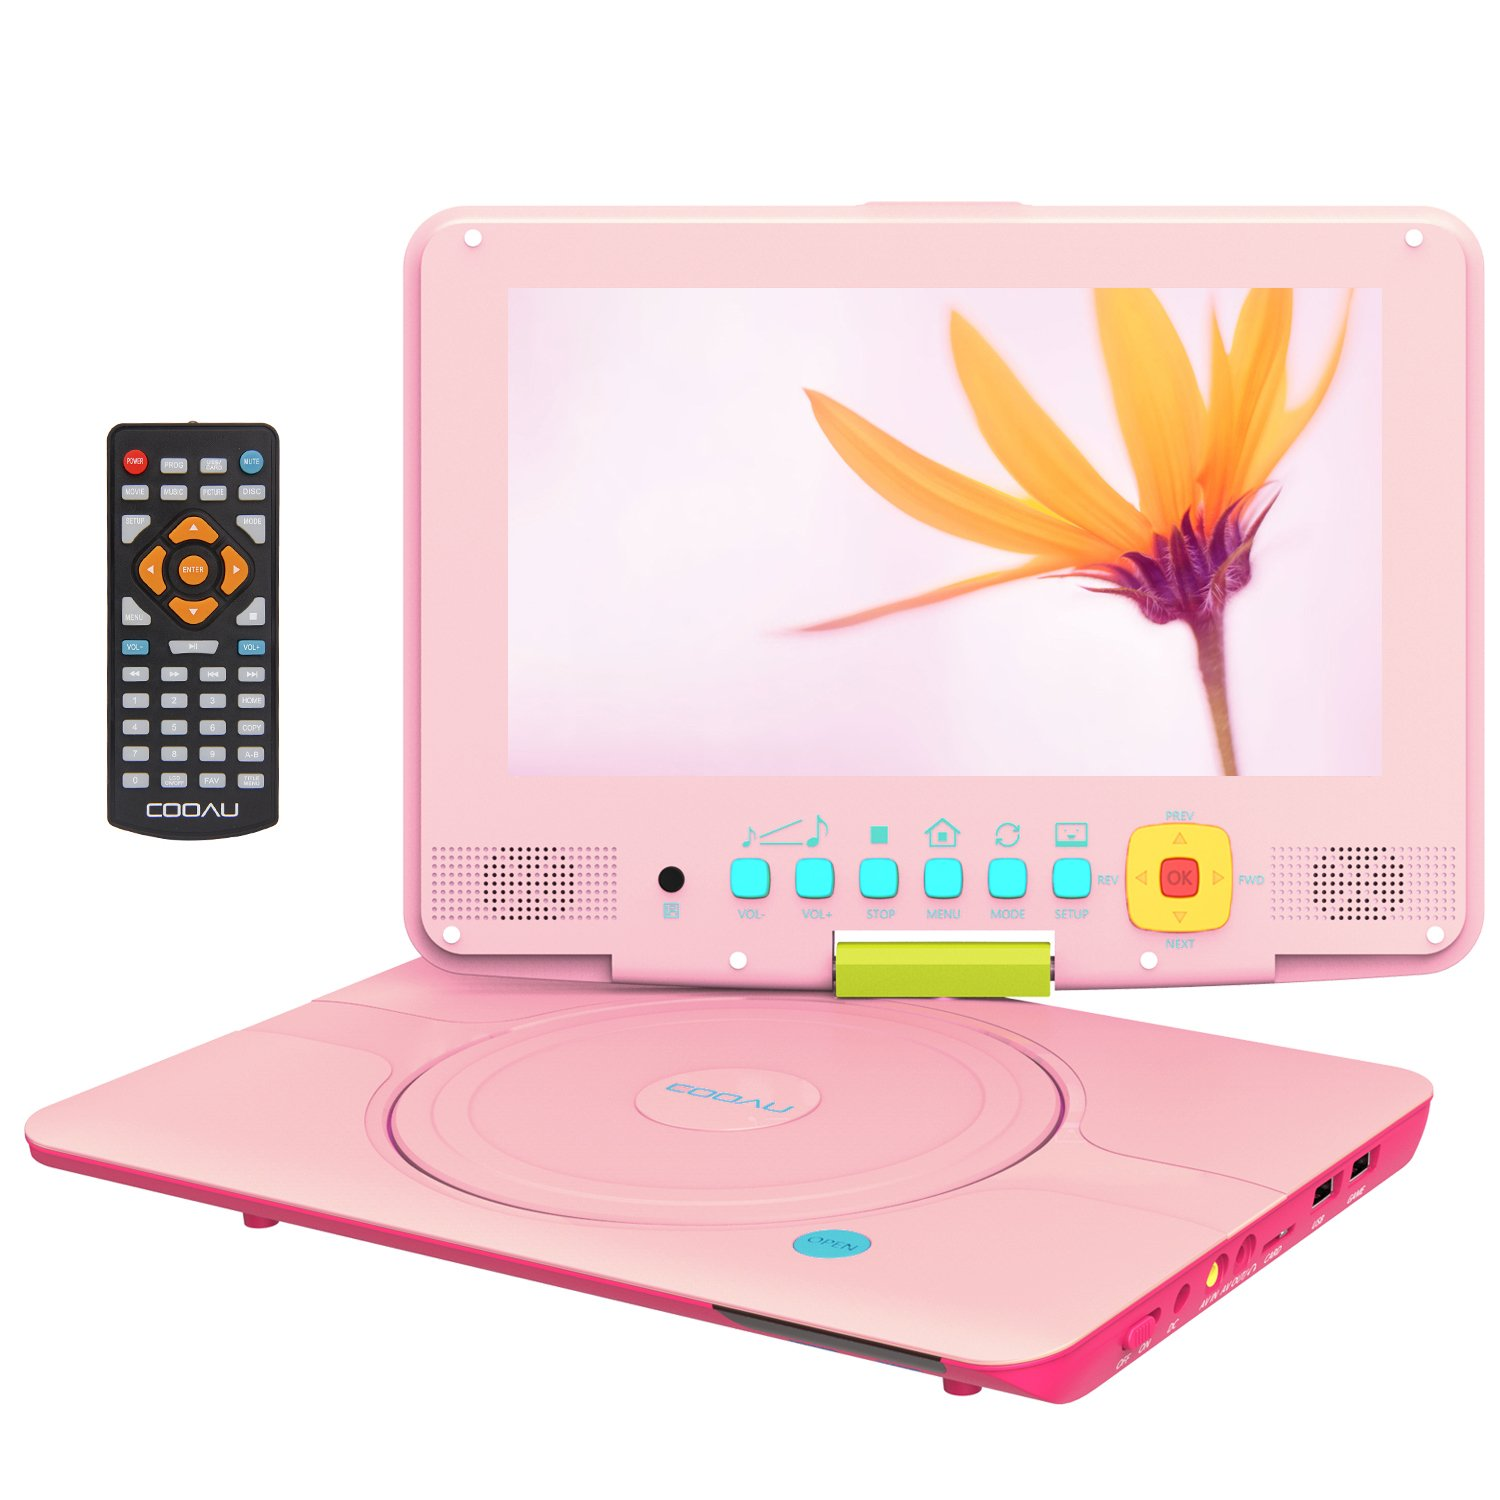 COOAU 12'' Kids Portable DVD Player with 9'' Swivel Screen, 5 Hours Rechargeable Battery, Remote Controller, Car Charger, Support TF Card/USB/Sync Screen/1080P Video Playback, Pink by COOAU